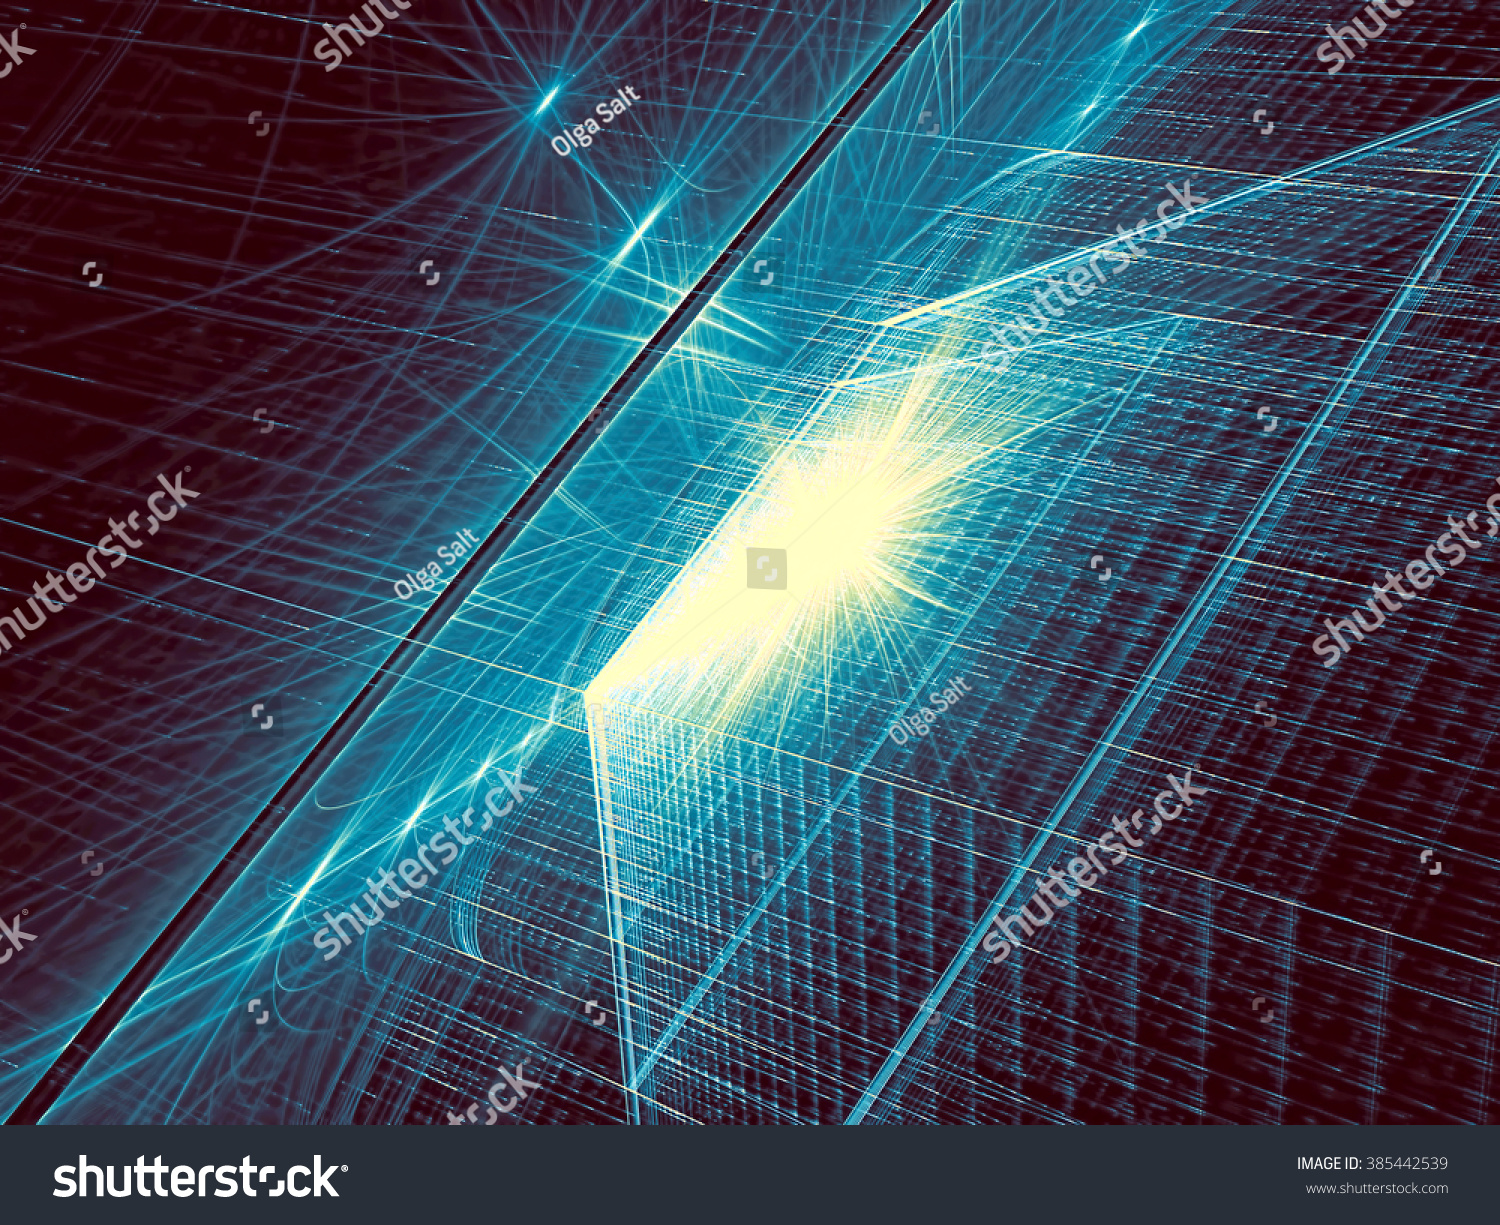 Abstract Technology Background With Light Effect: Abstract Tech Background Computergenerated Image Fractal